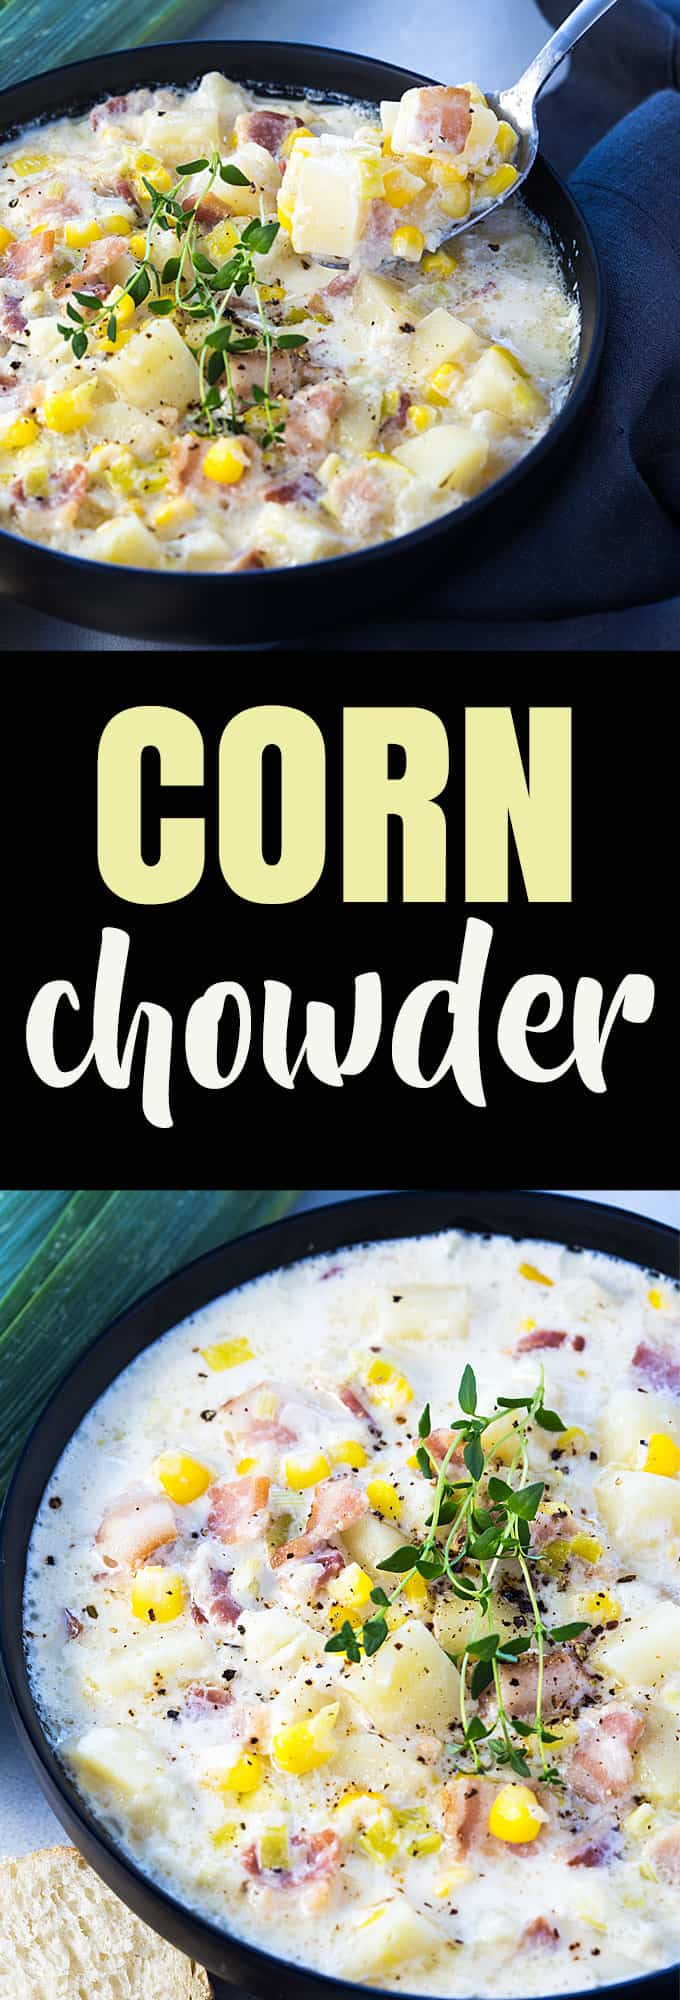 Corn Chowder - A creamy comfort food chowder full of corn, bacon and potatoes.